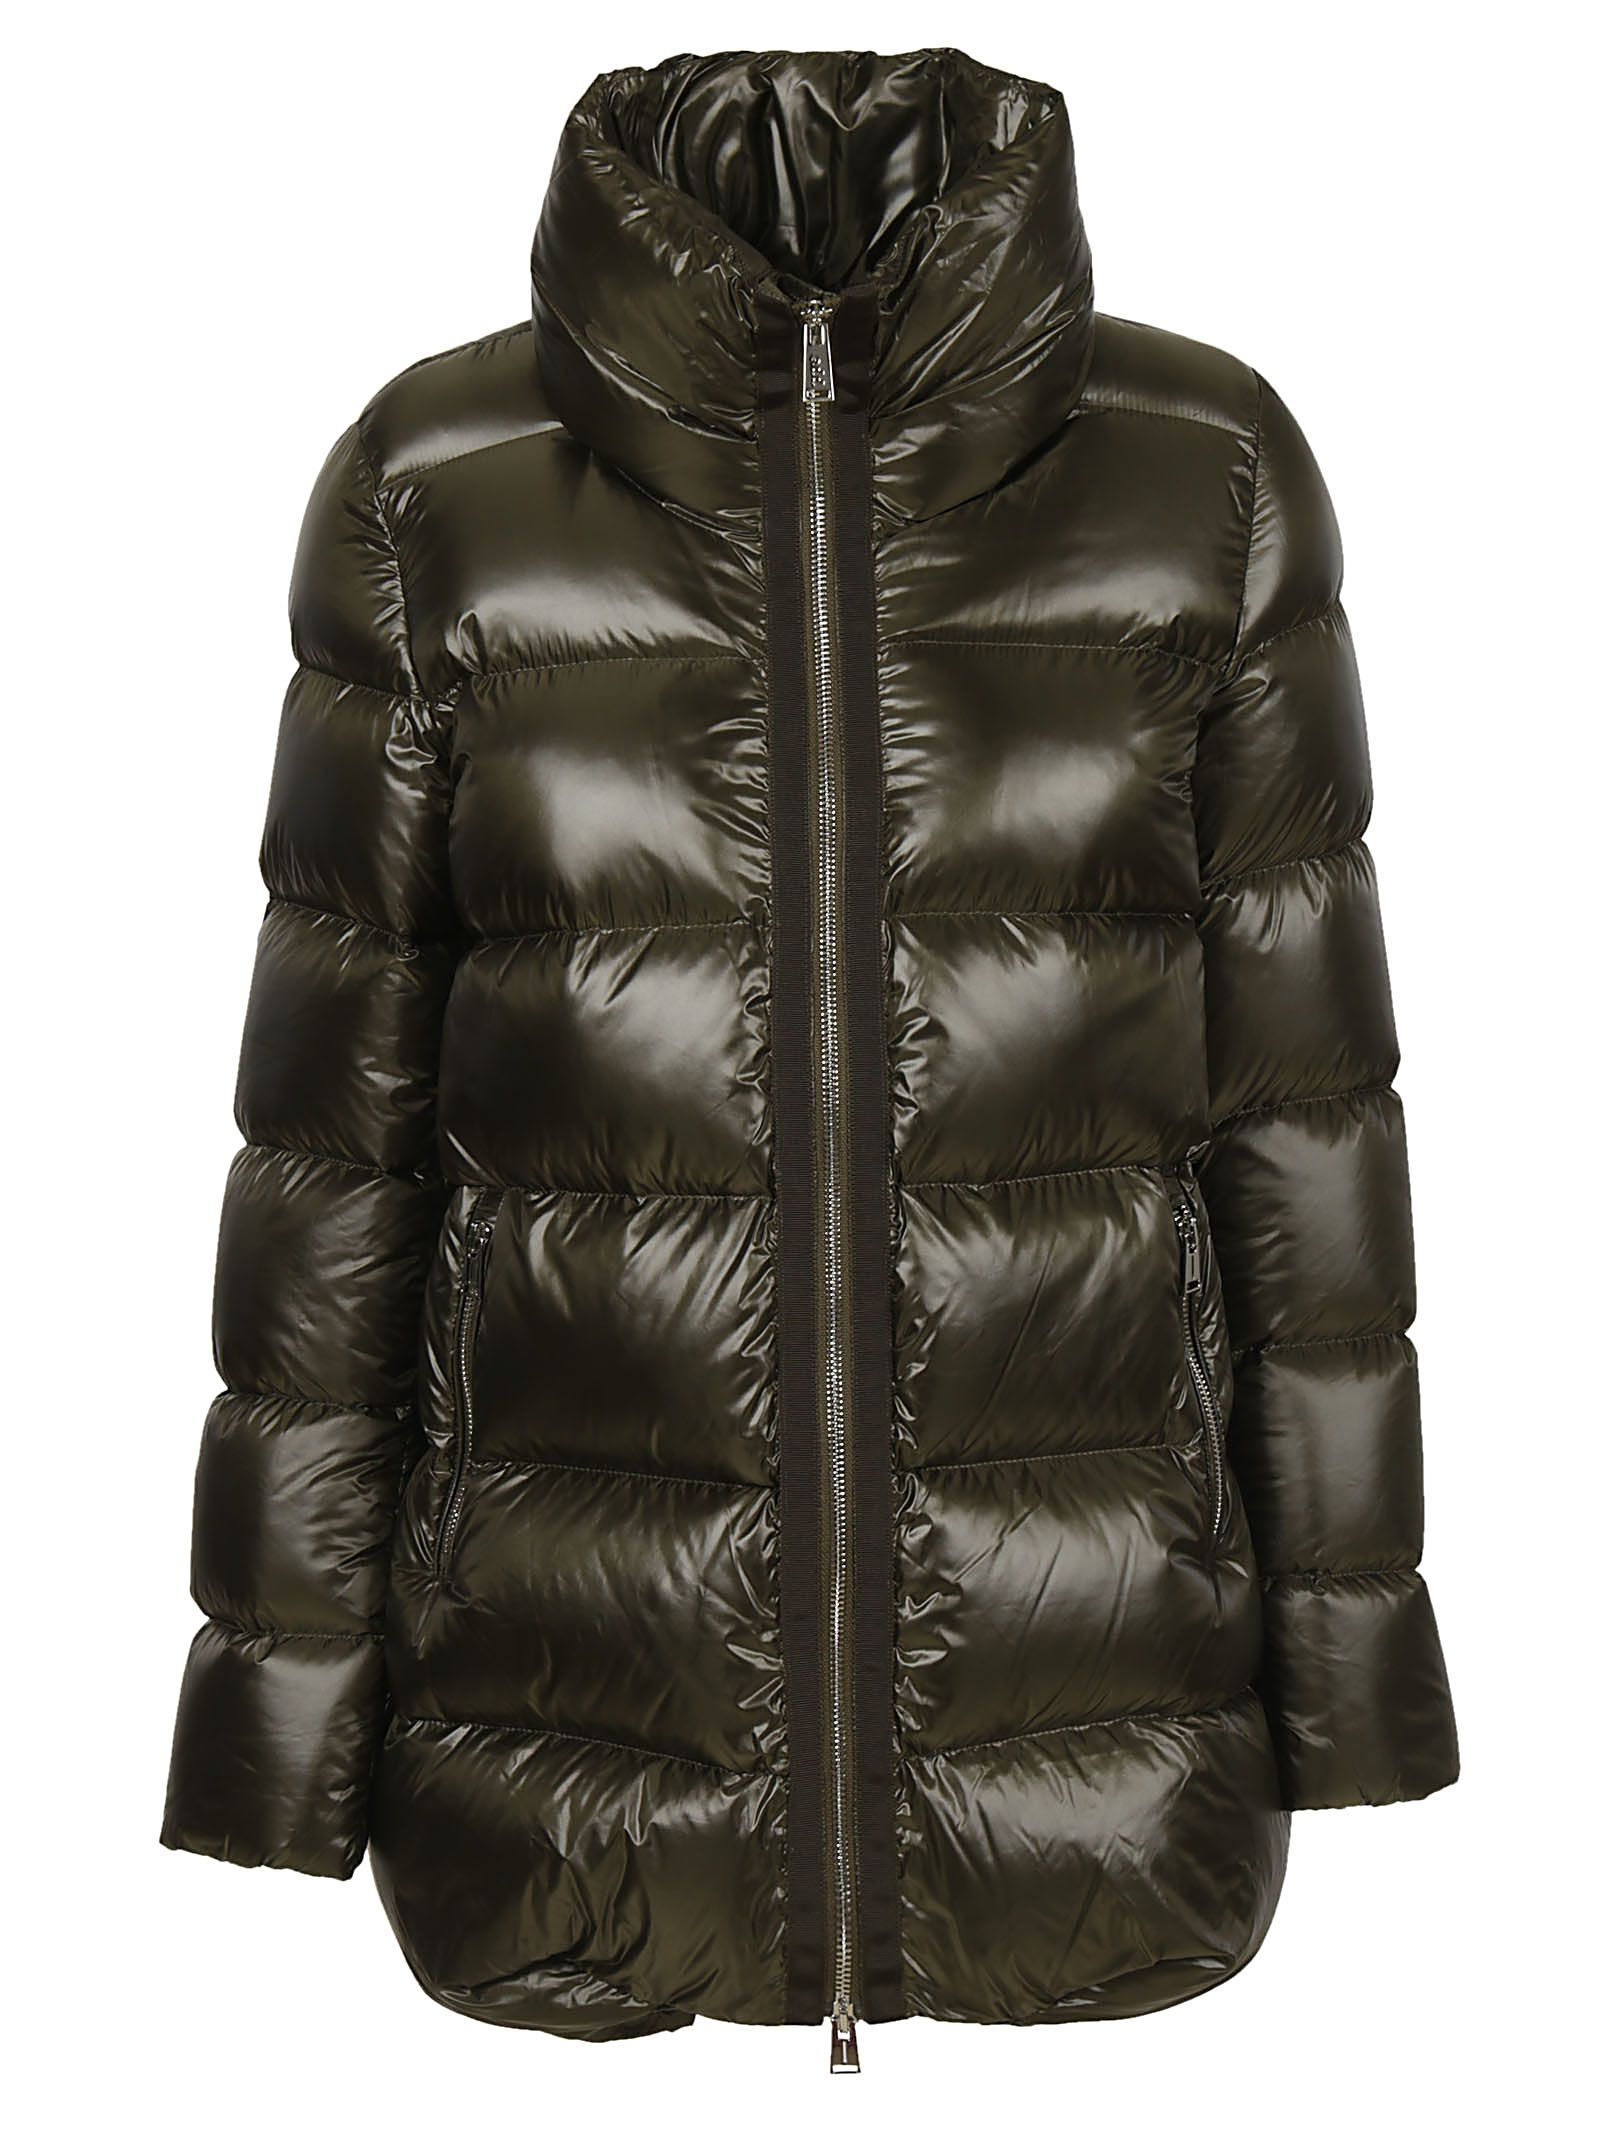 ADD Zipped-Up Padded Jacket in Verde Militare